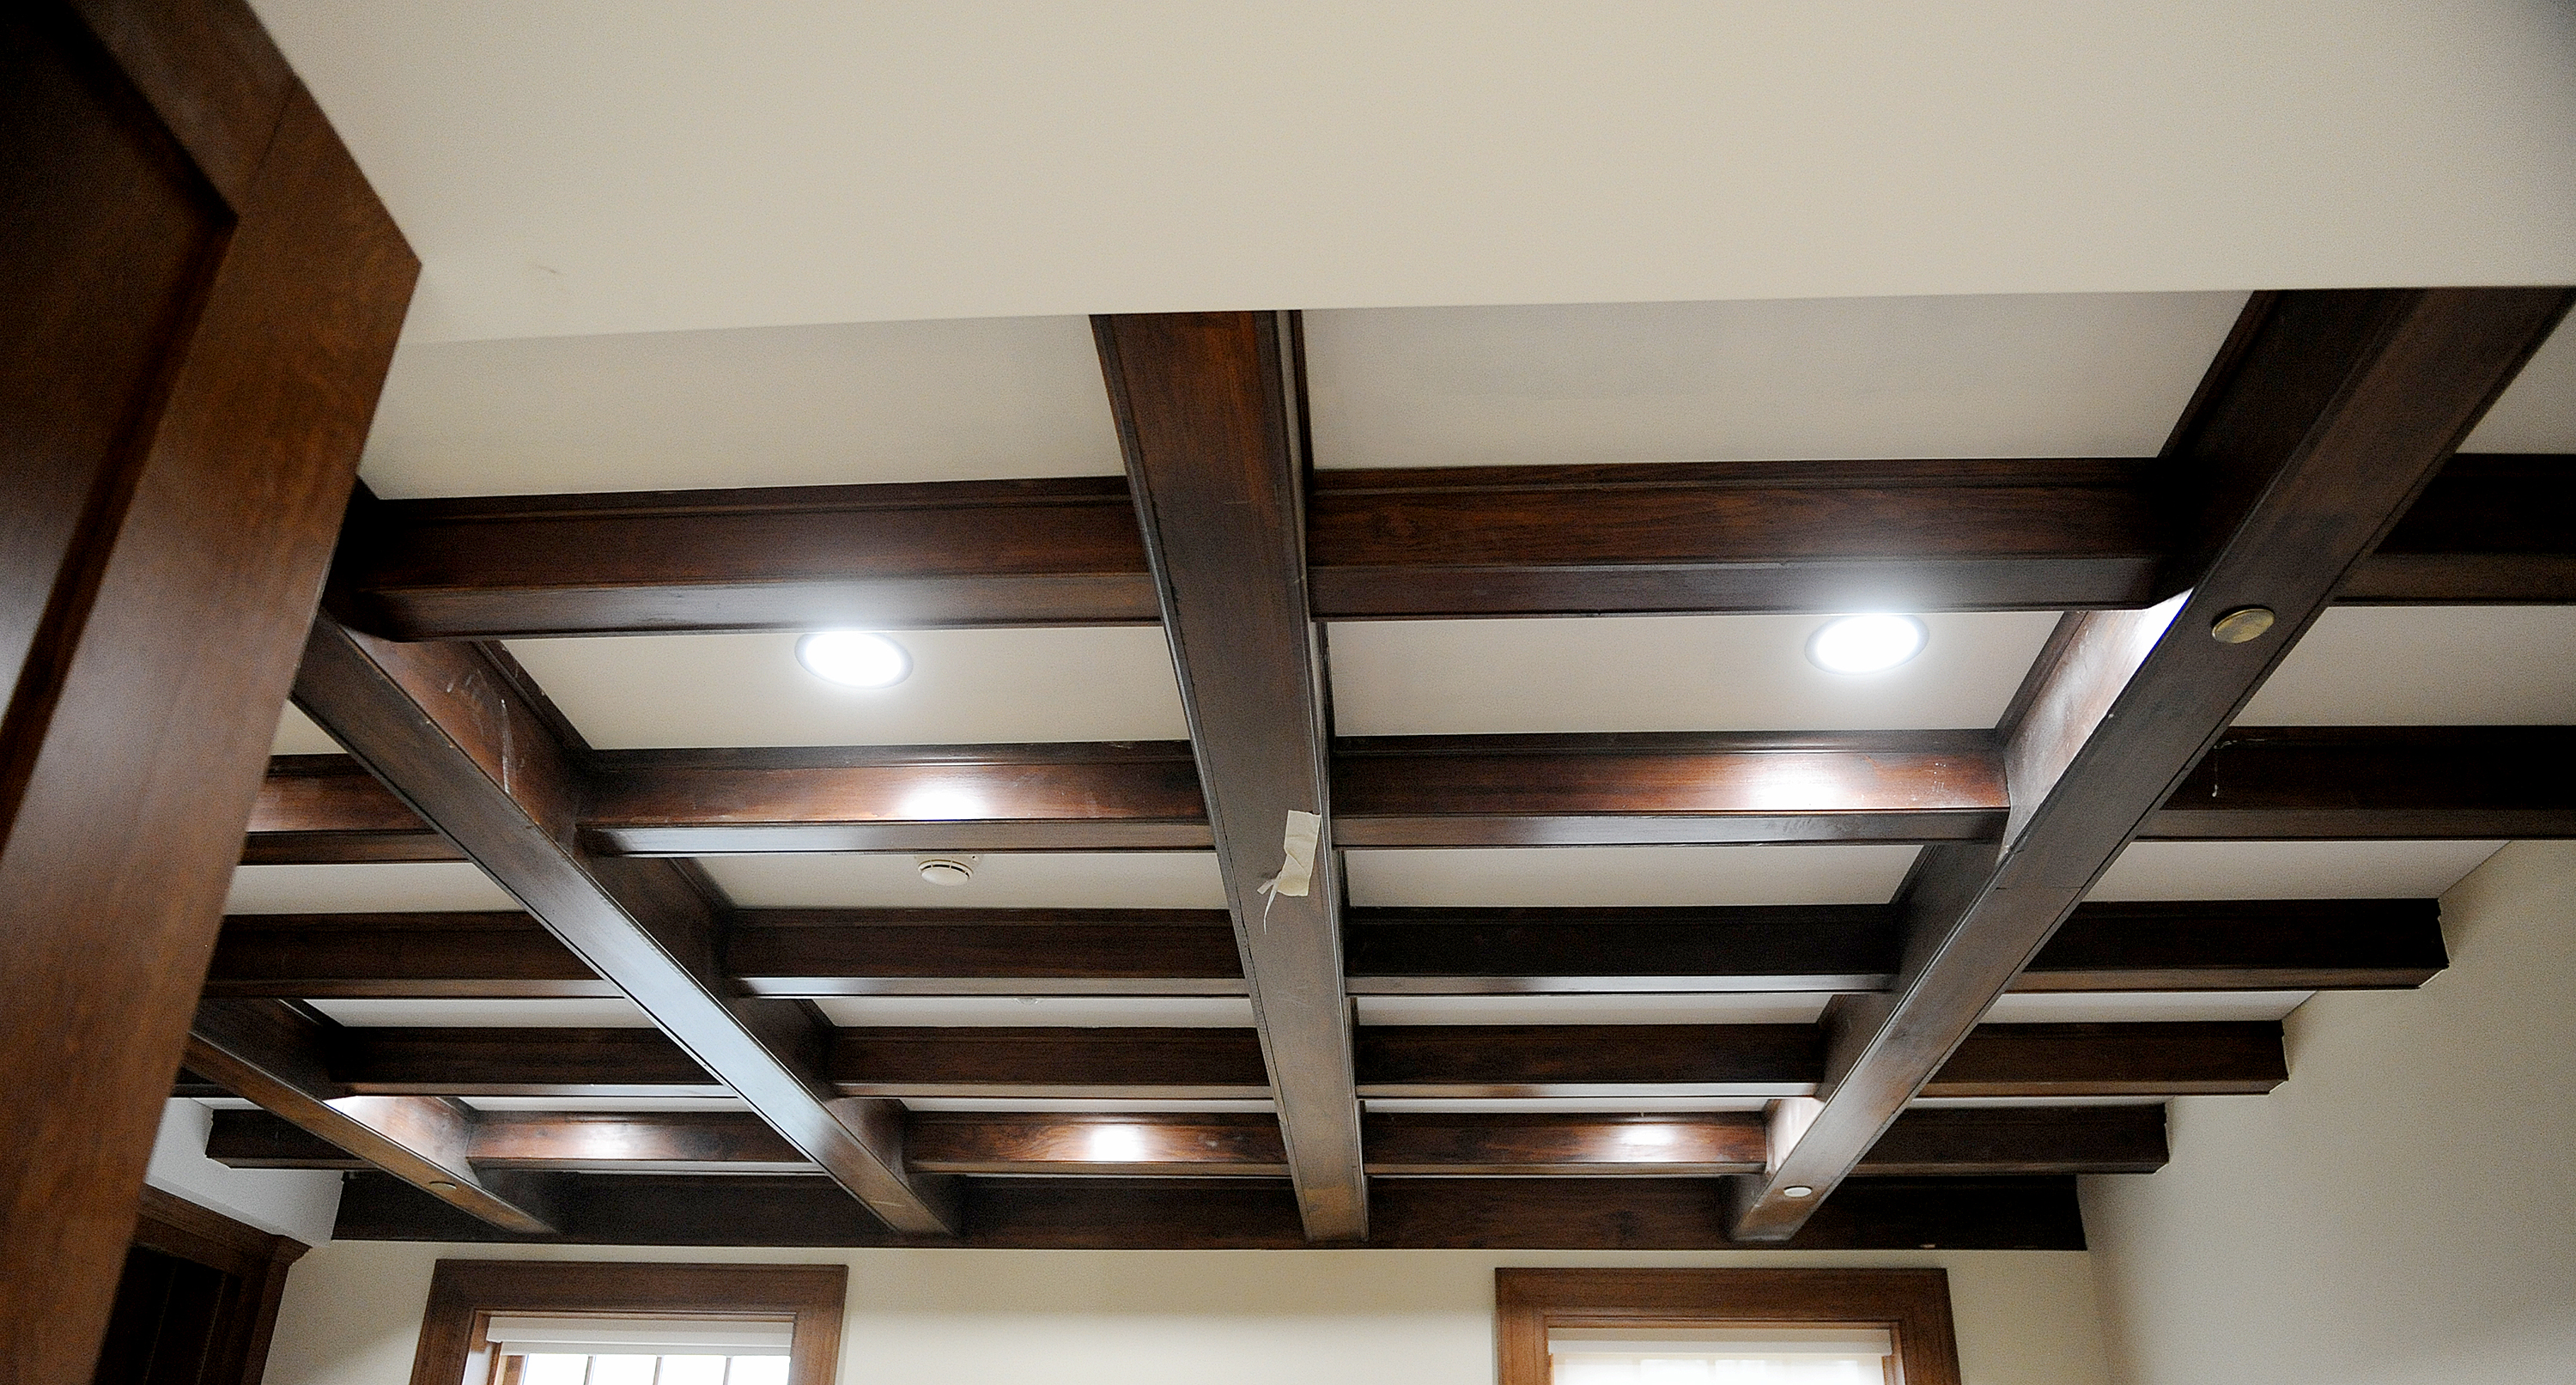 This ceiling was preserved during the renovation process at Hildreth-Mirza Hall at Bucknell University.